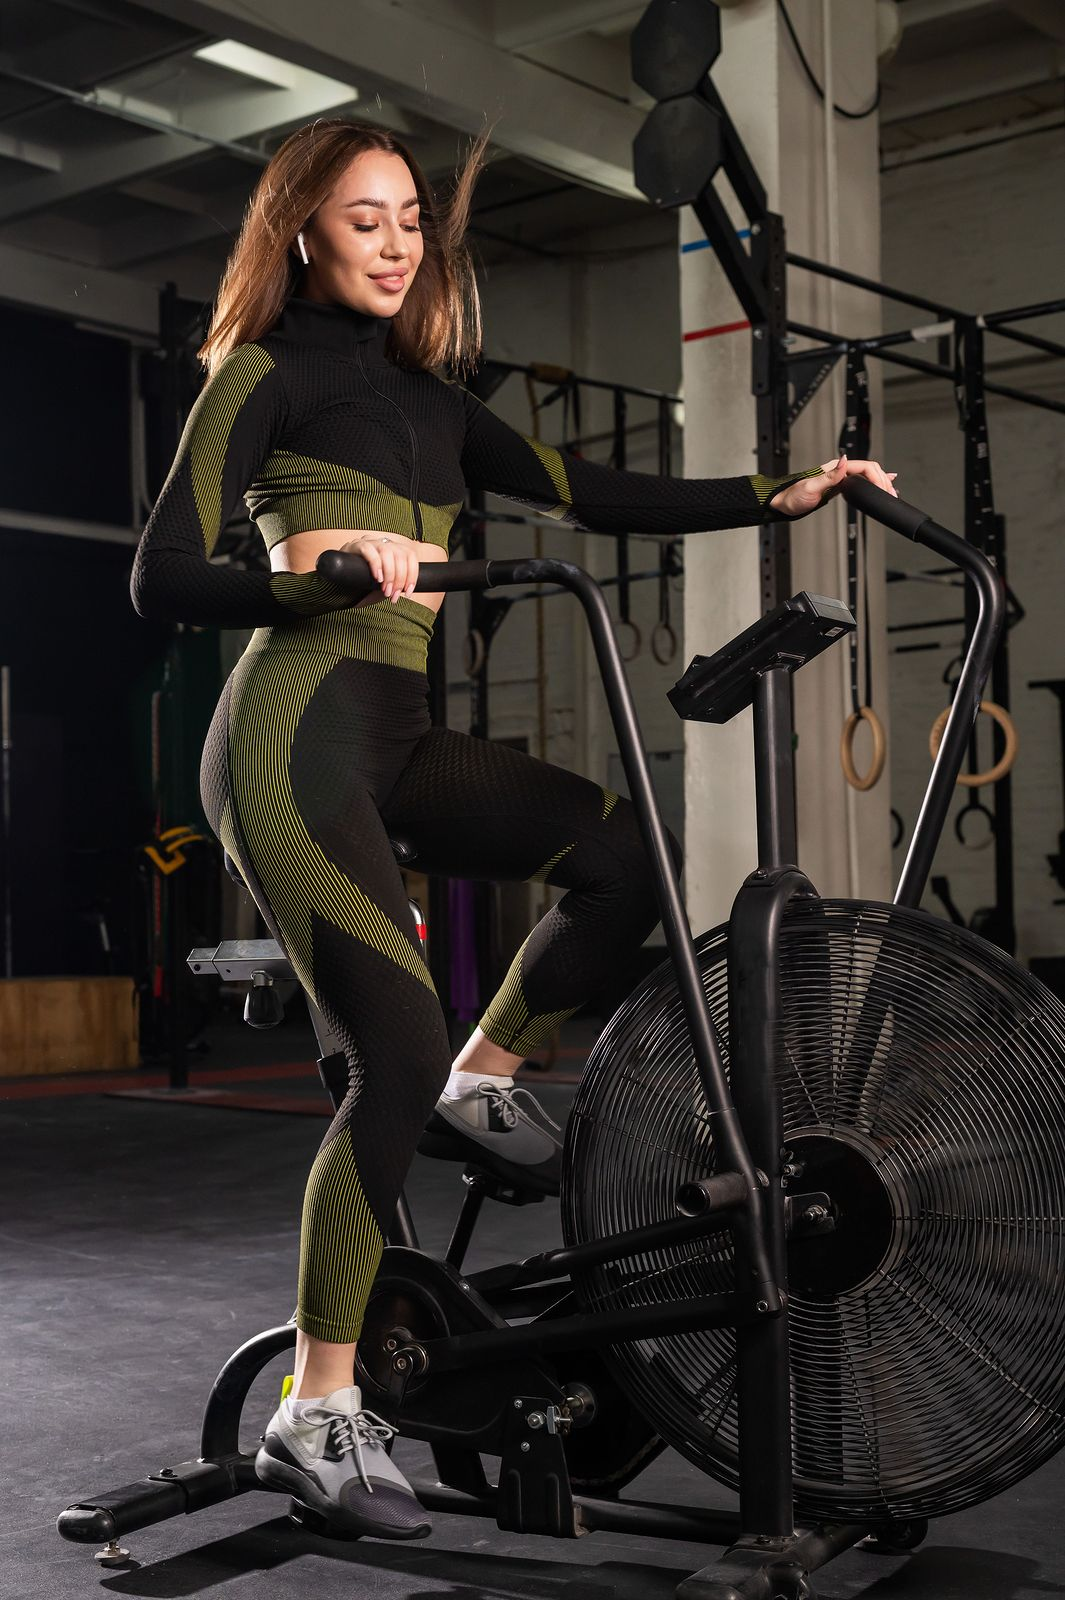 Assault Bike Versus Rower Which is Better in 2020 No